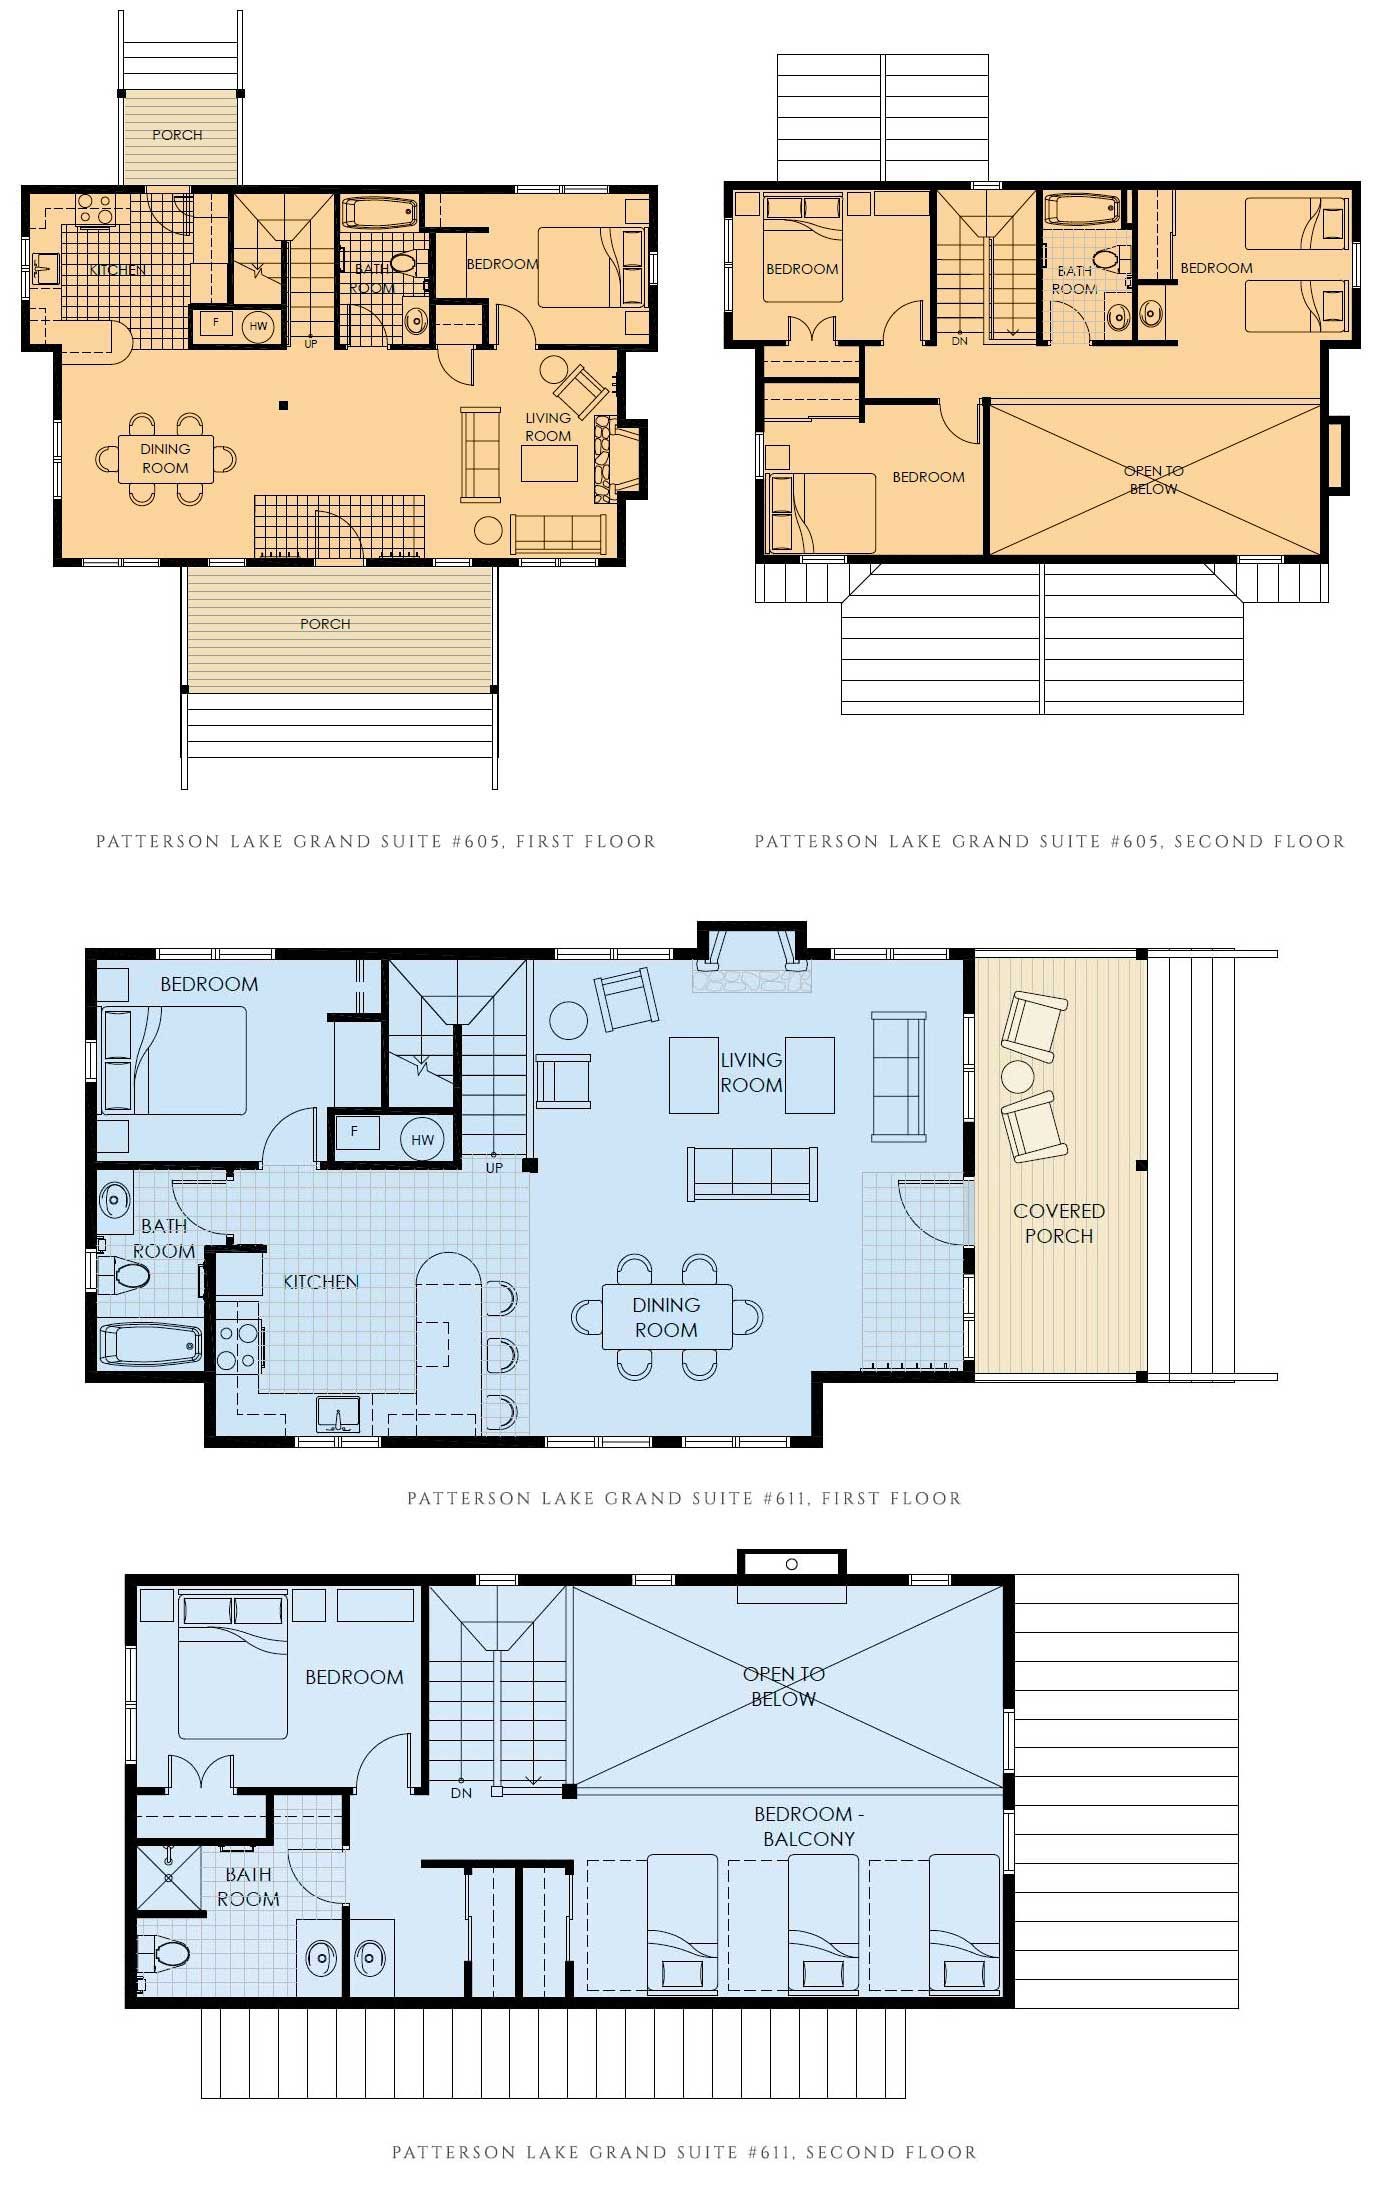 Patterson Lake Grand Suite layout